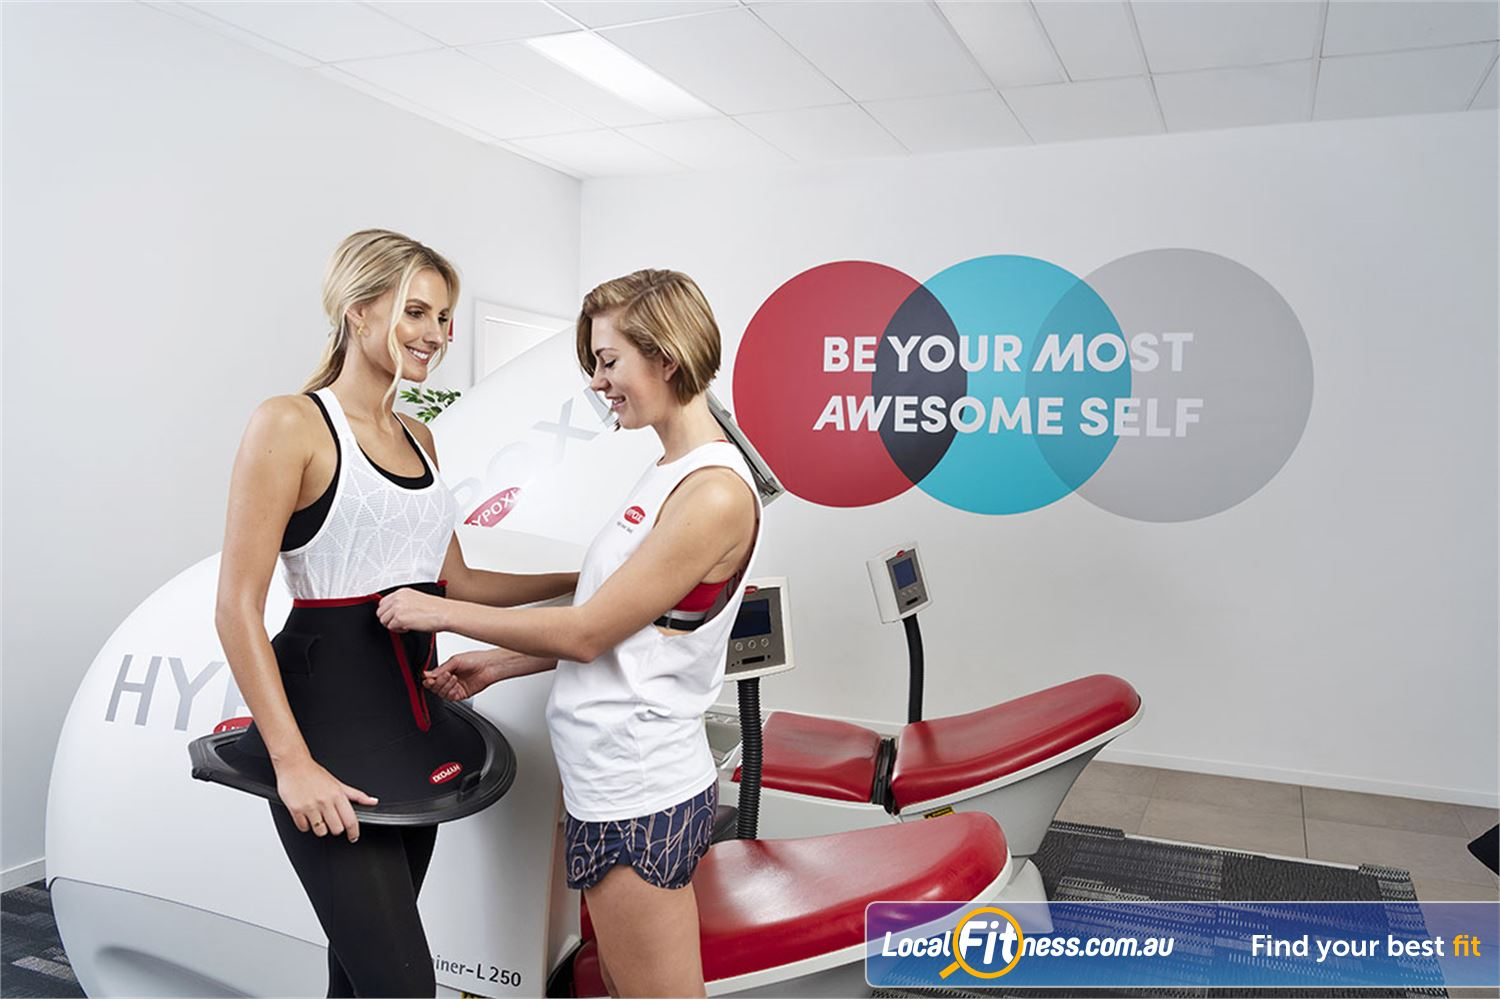 HYPOXI Weight Loss Waterloo All it takes is 30 minutes of low-impact exercise in our Waterloo weight-loss studio.